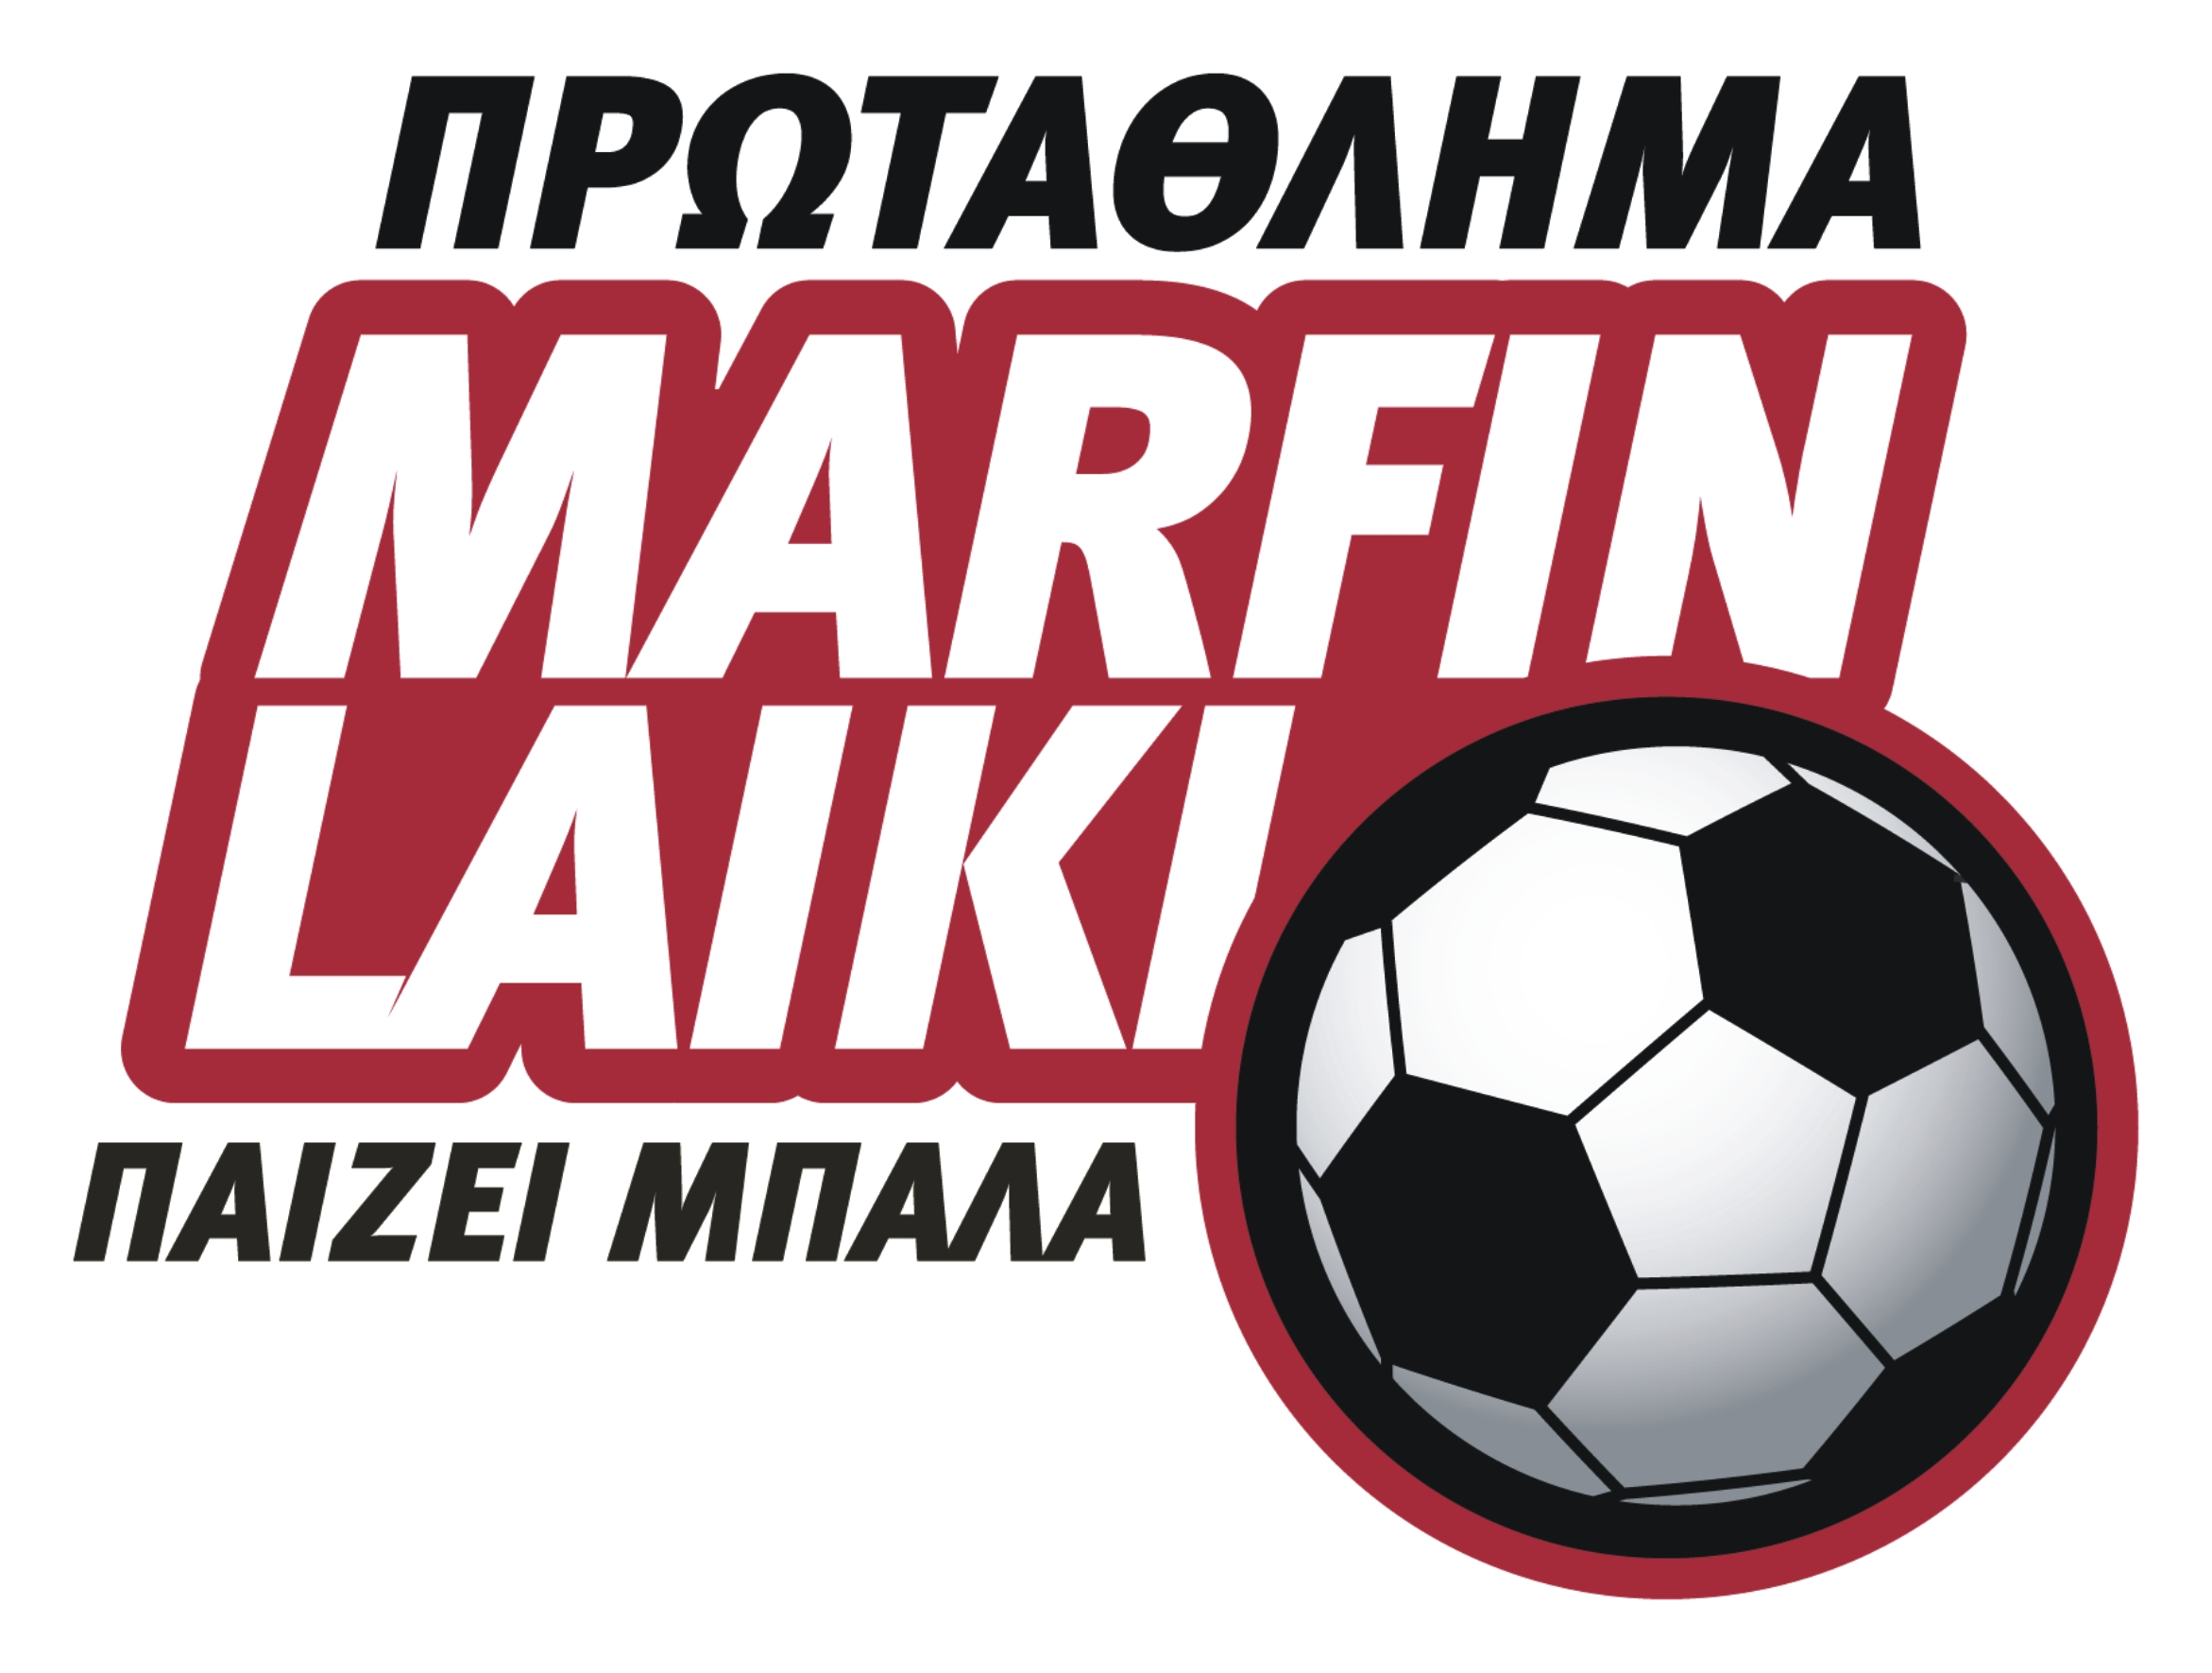 Marfin Laiki League zypern